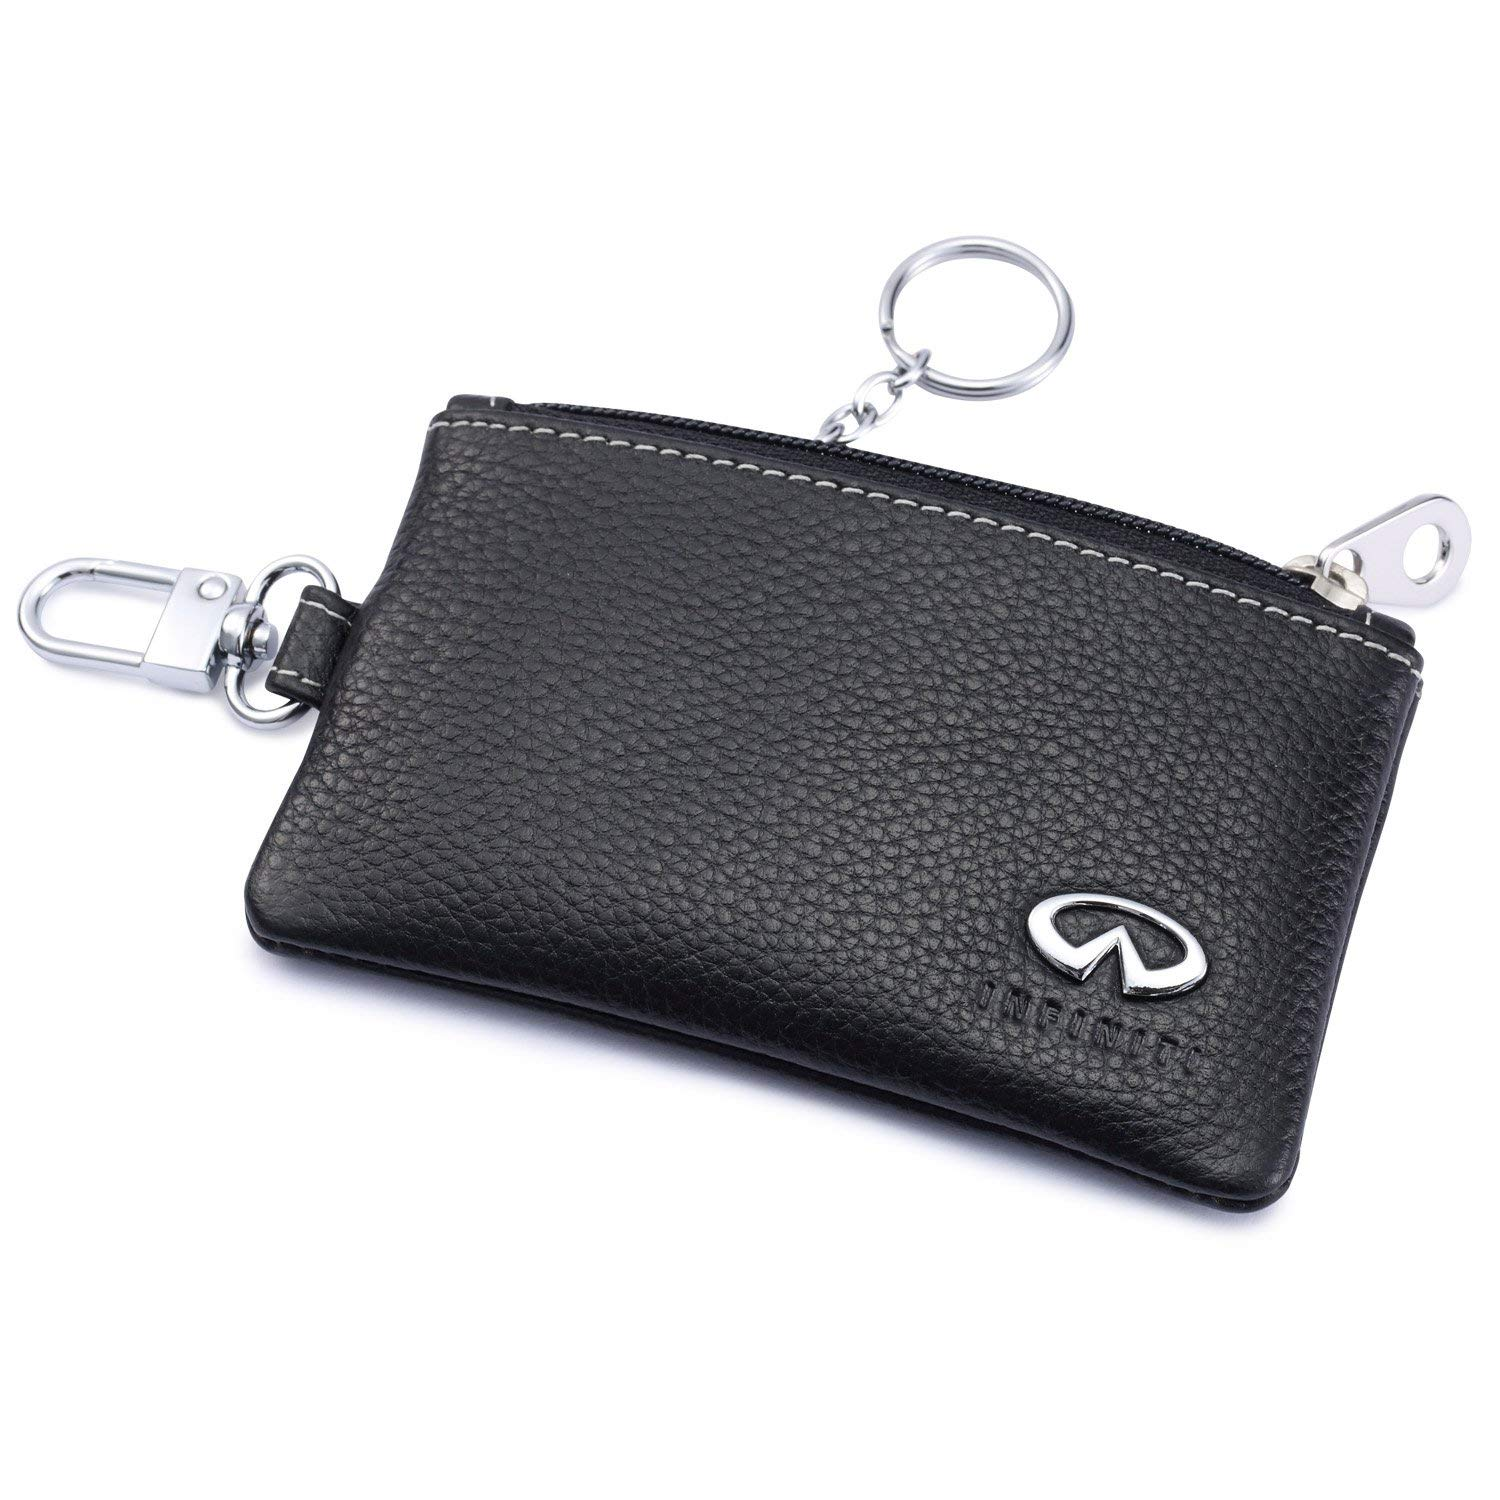 Infiniti Car Key Holder Remote Cover Fob with 1 Metal Keychain - Genuine Leather